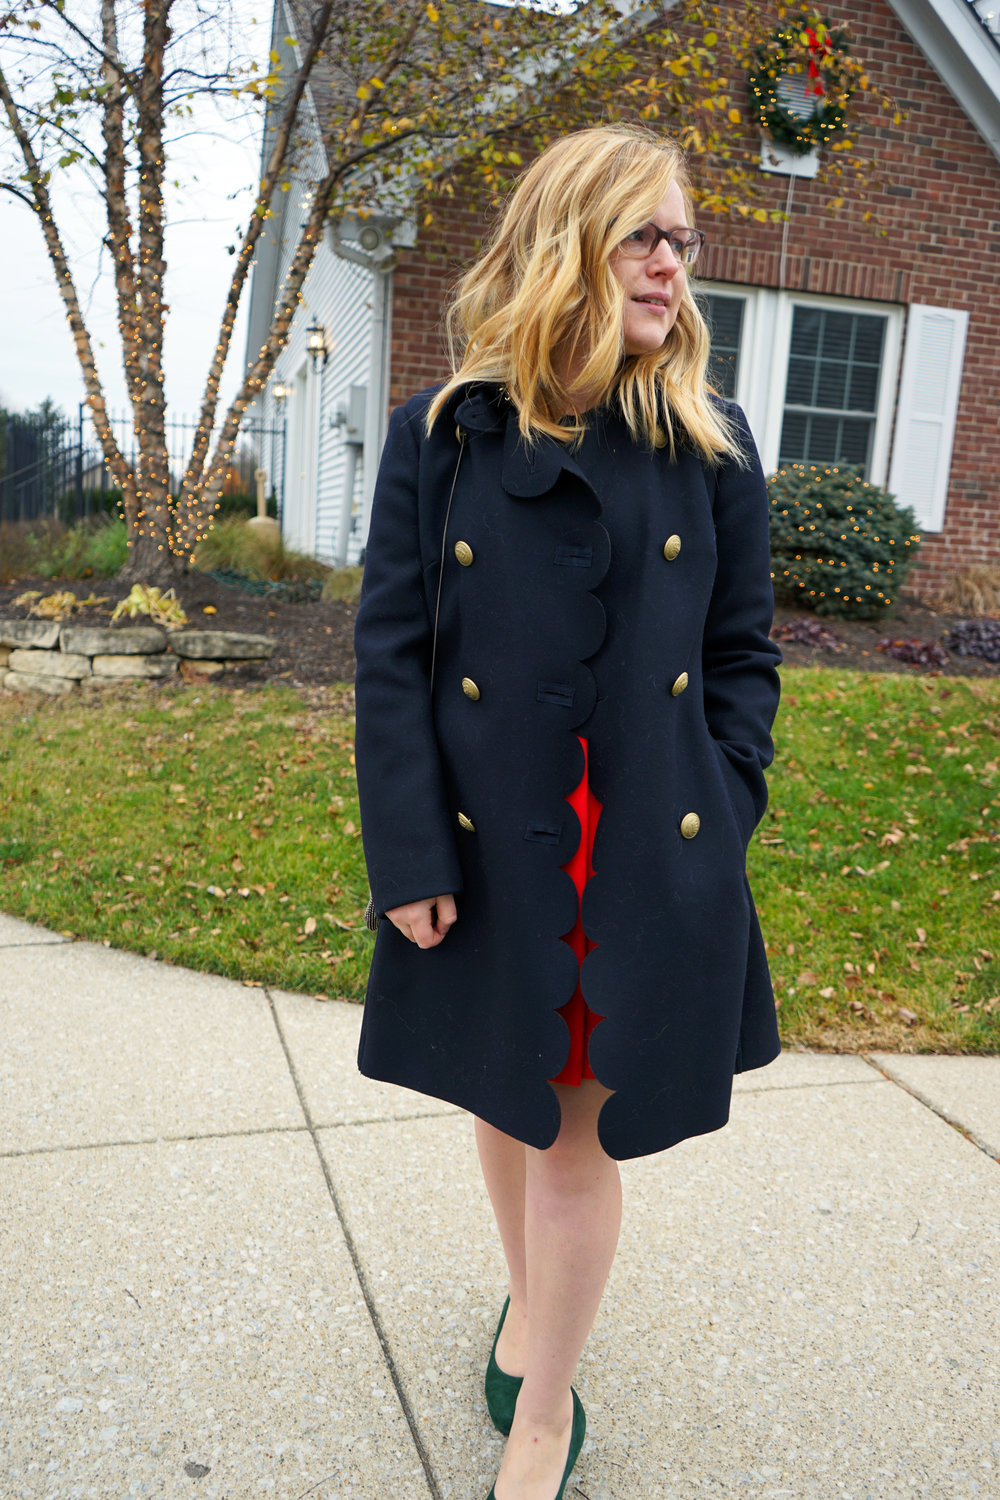 Maggie a la Mode - RED Valentino Scalloped Peacoat 3.JPG